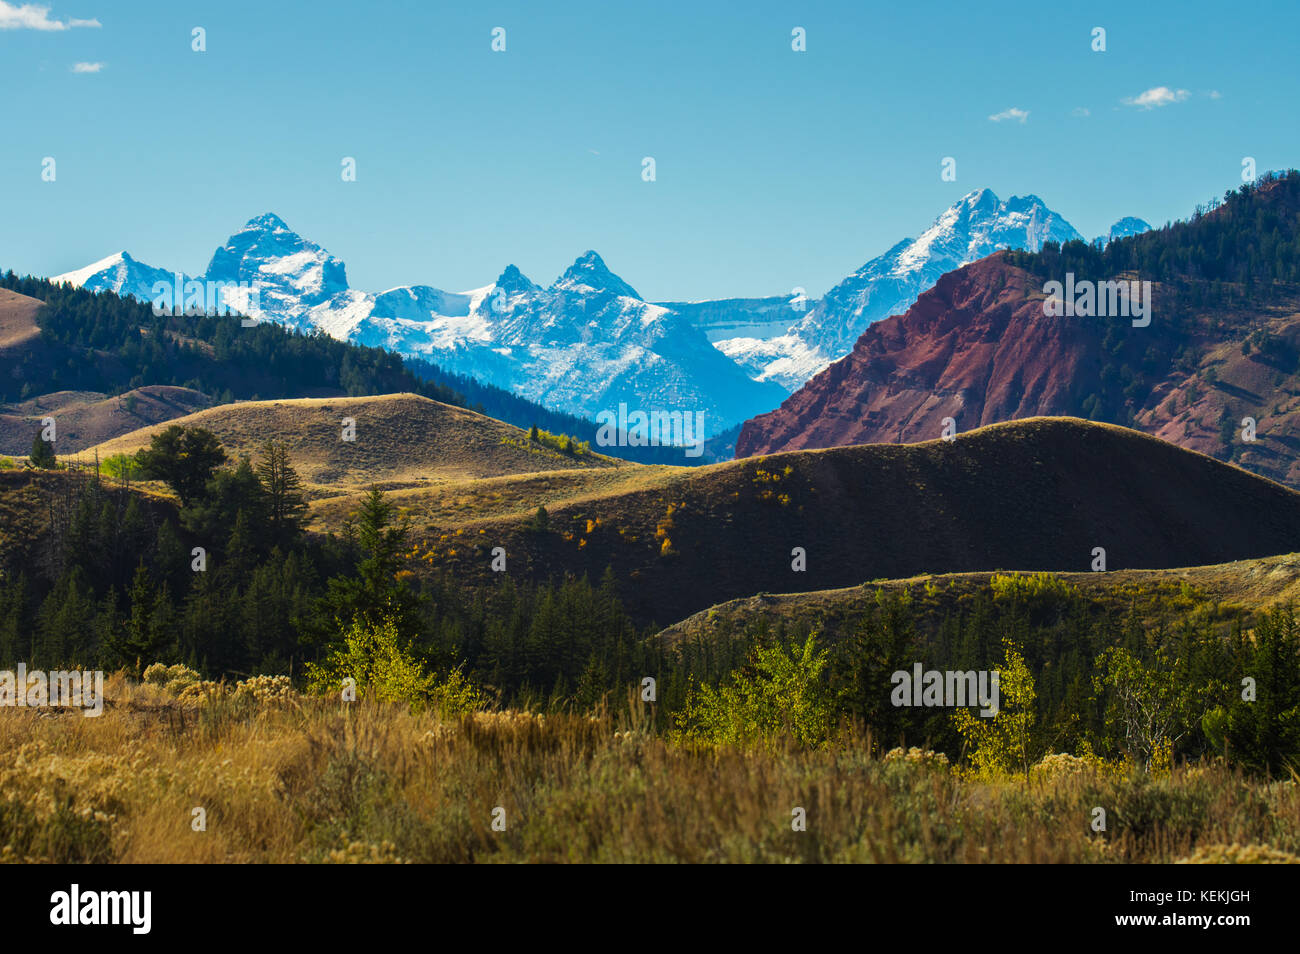 The diverse Wyoming landscape is revealed in colorful layers of Earth with the ever present Grand Teton Mountains, - Stock Image